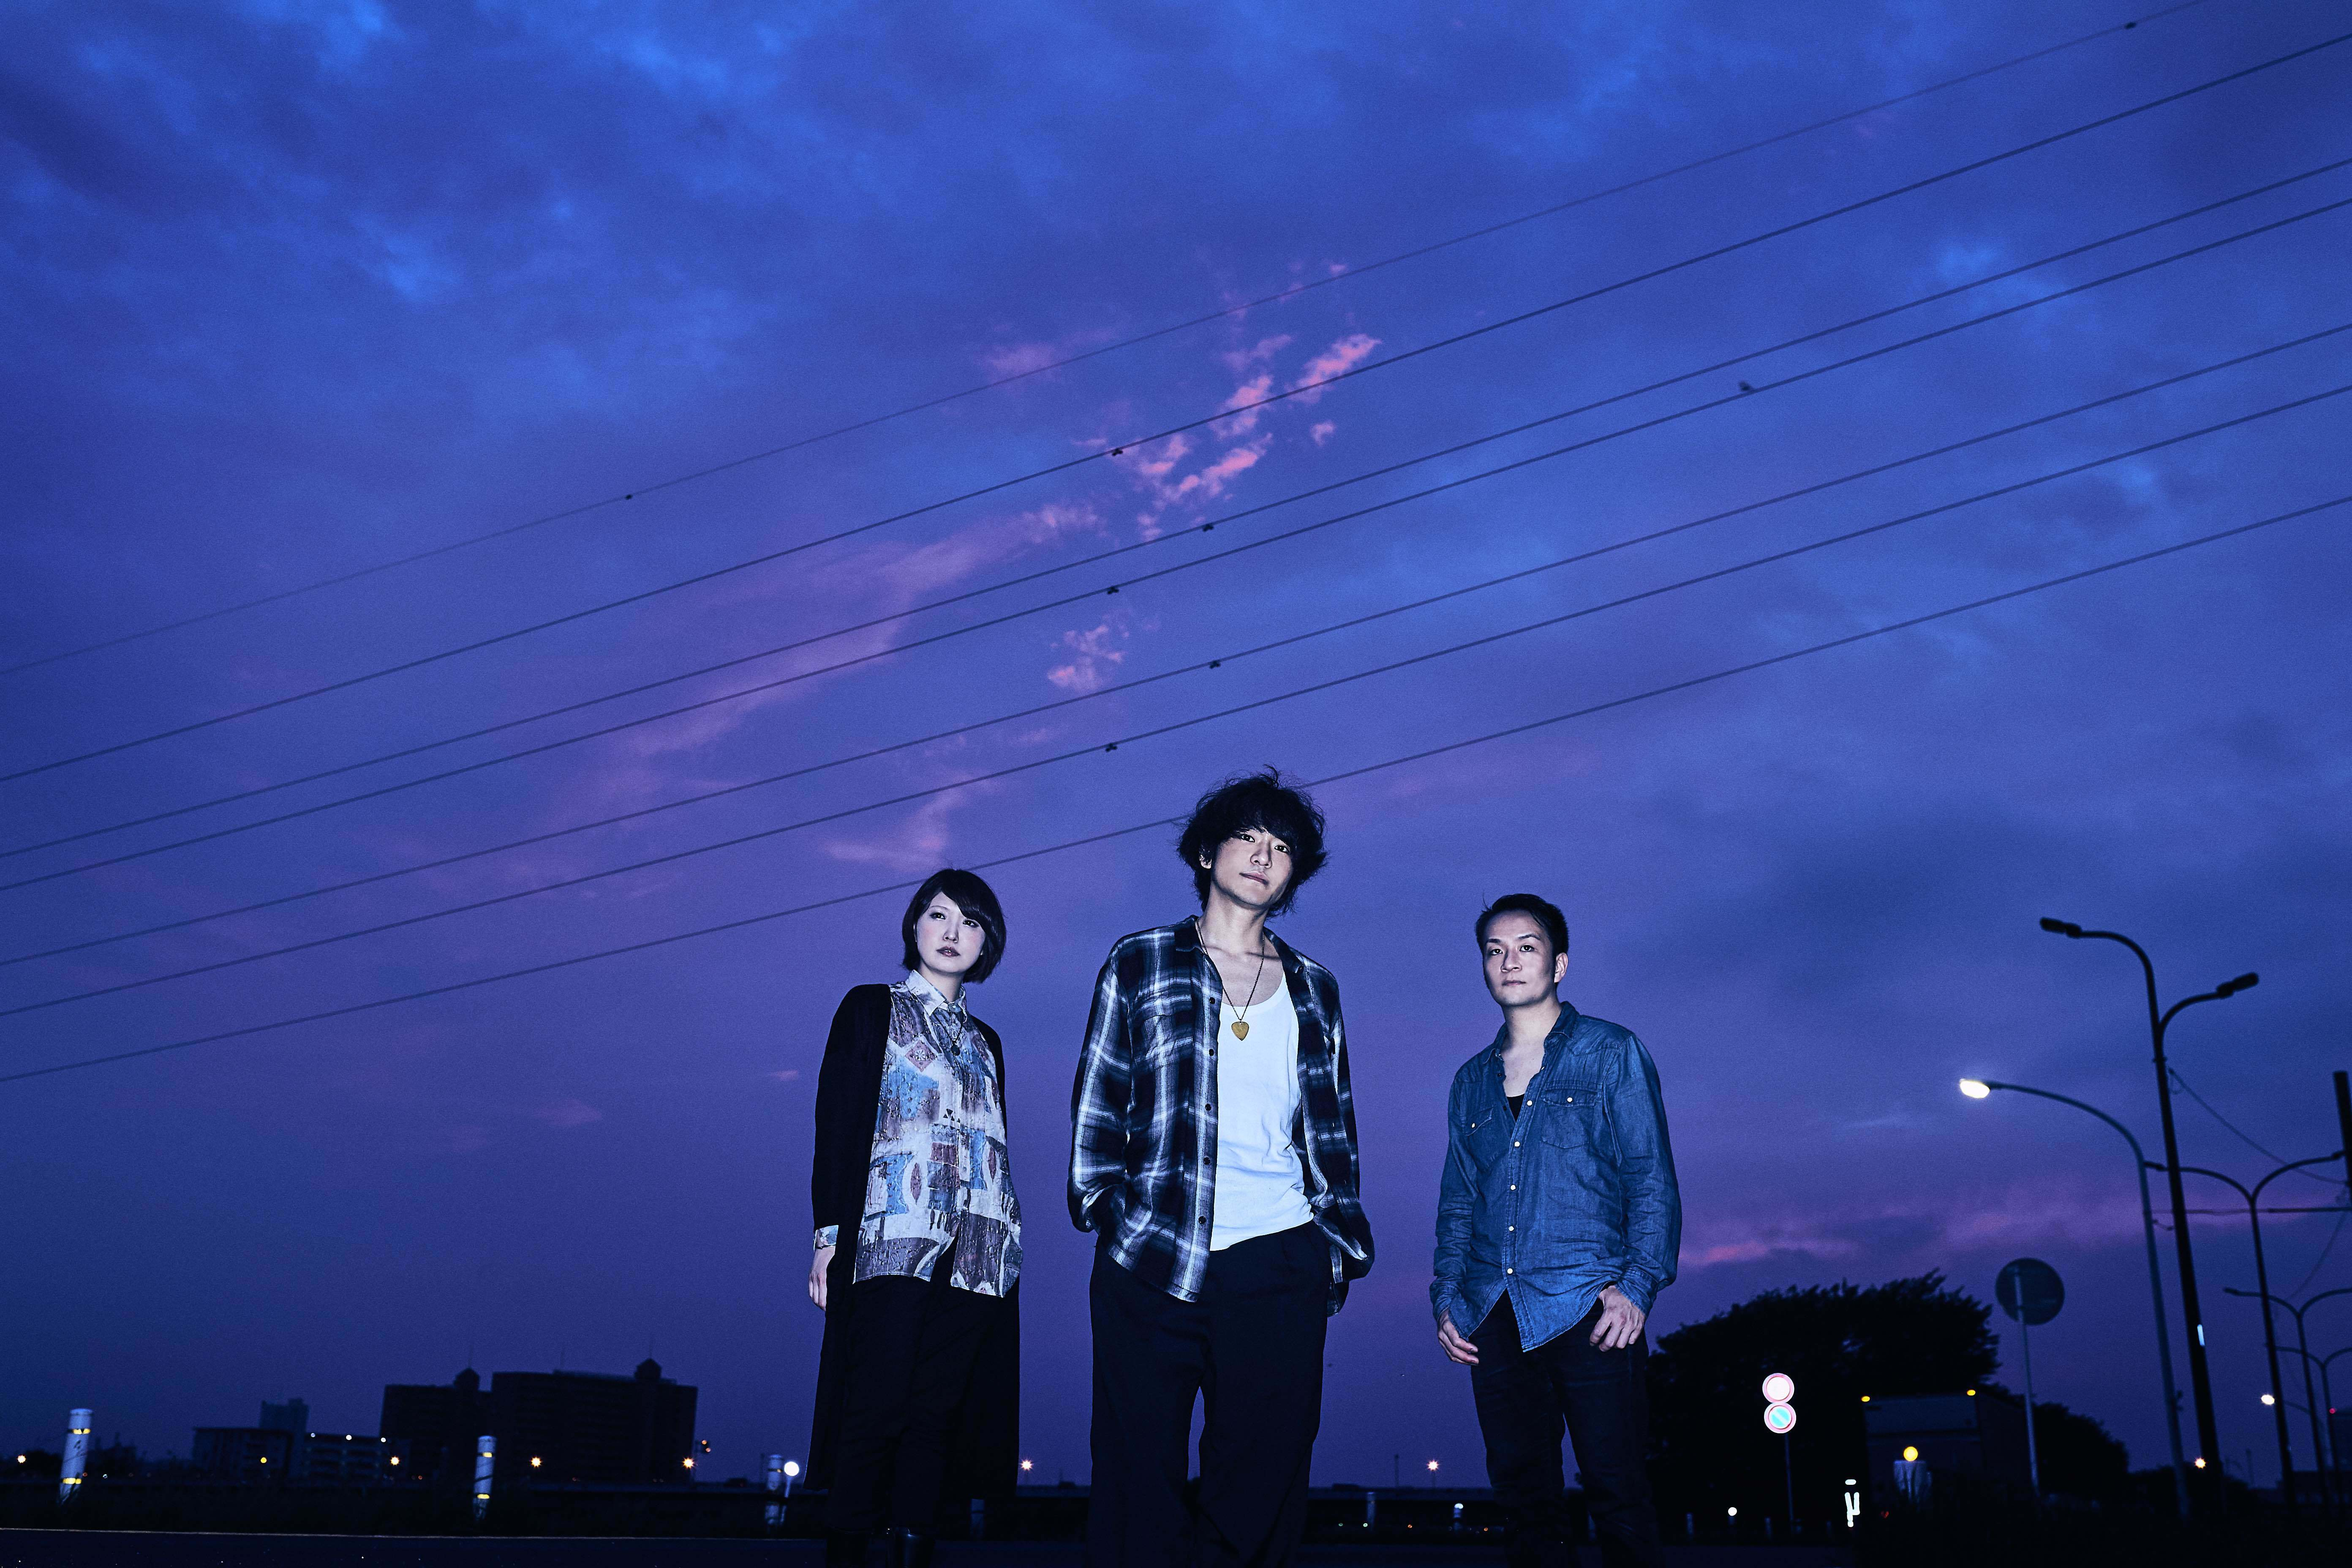 The cold tommy最新アルバム「BABY OVER THE WORLD」のライブDVD付きムック本を作ろう!